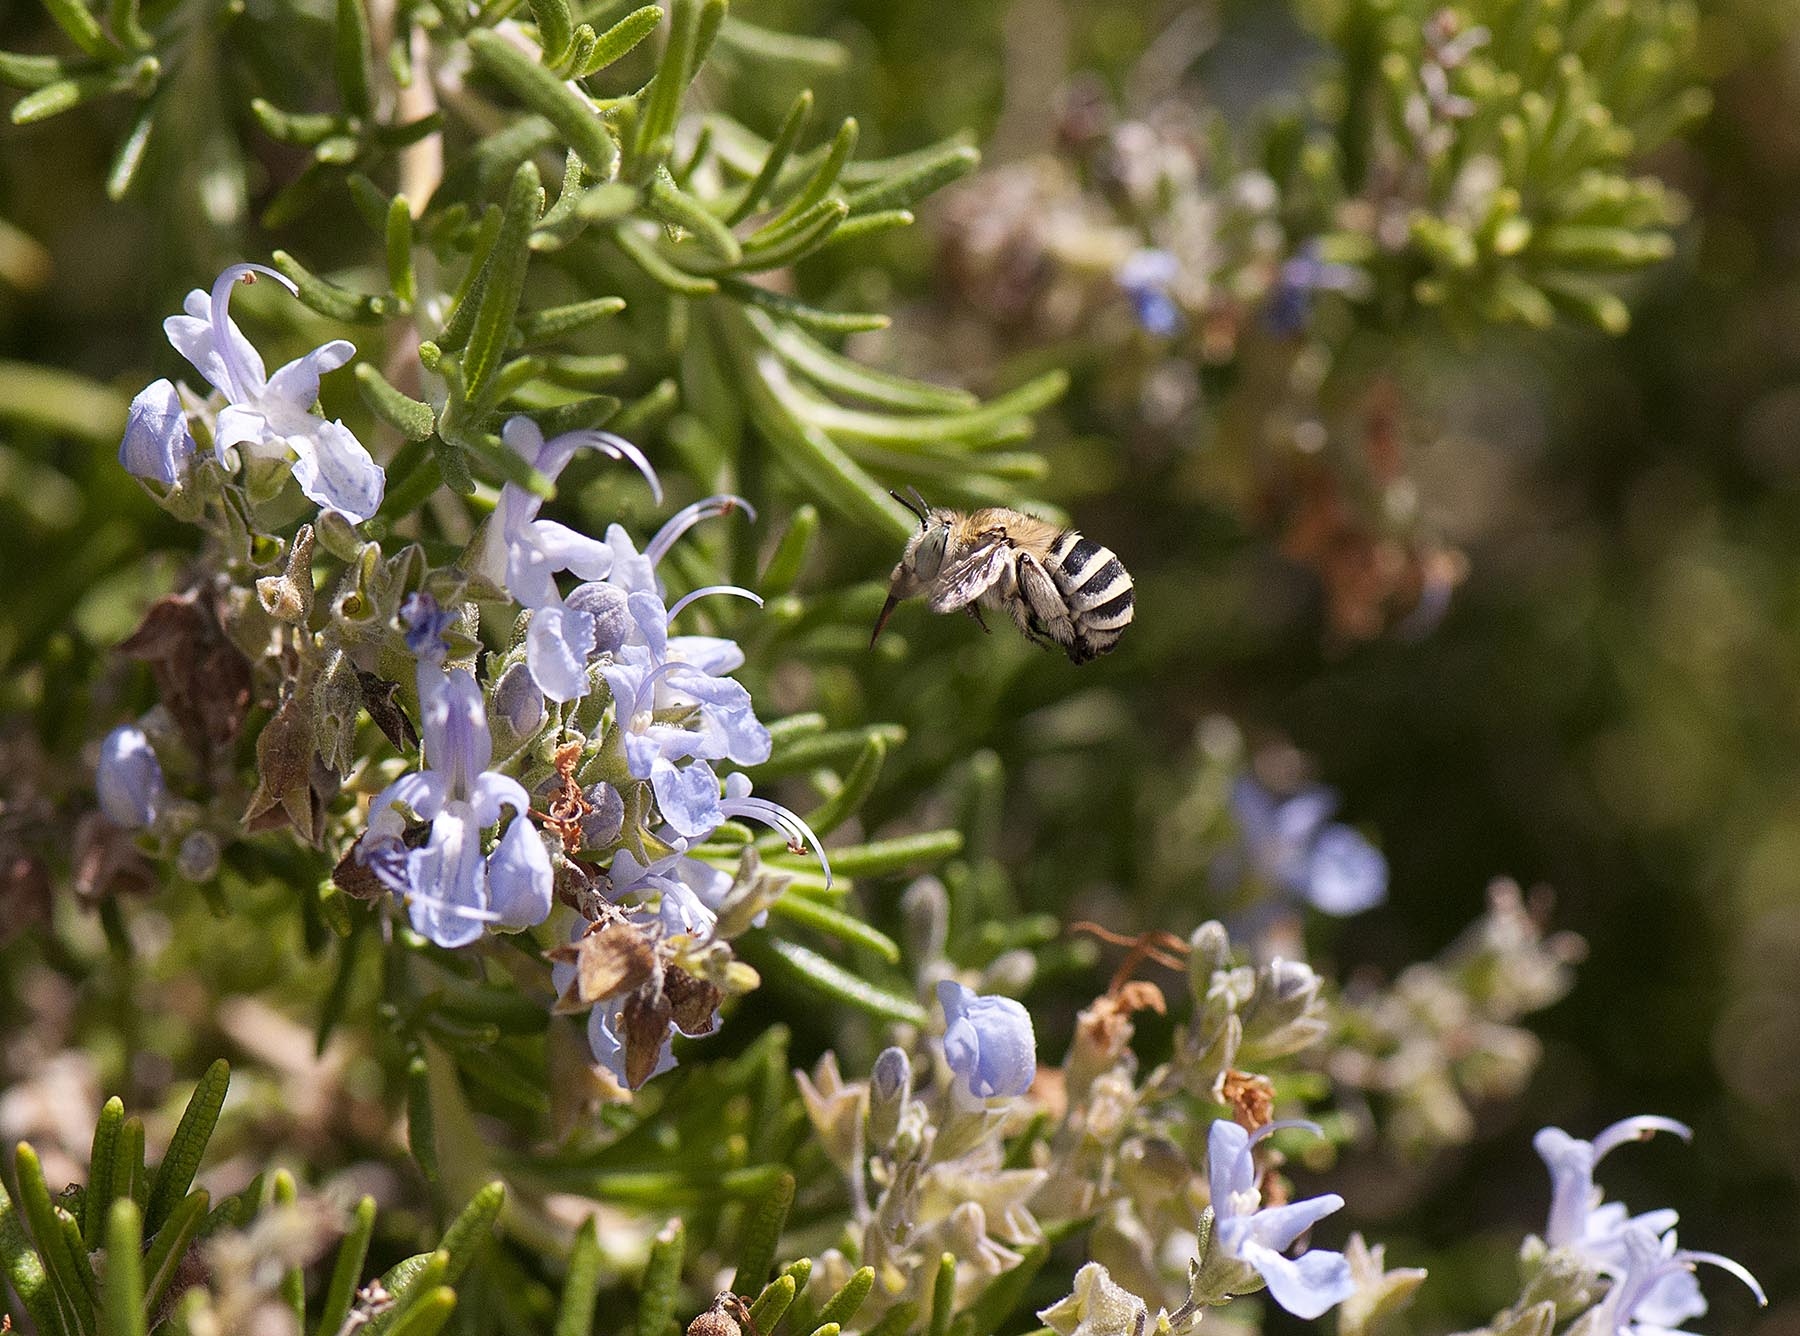 Bees pollinate wild species as well as a lot of our plant-based food such as these rosemary flowers. Image credit -  Curro Molina